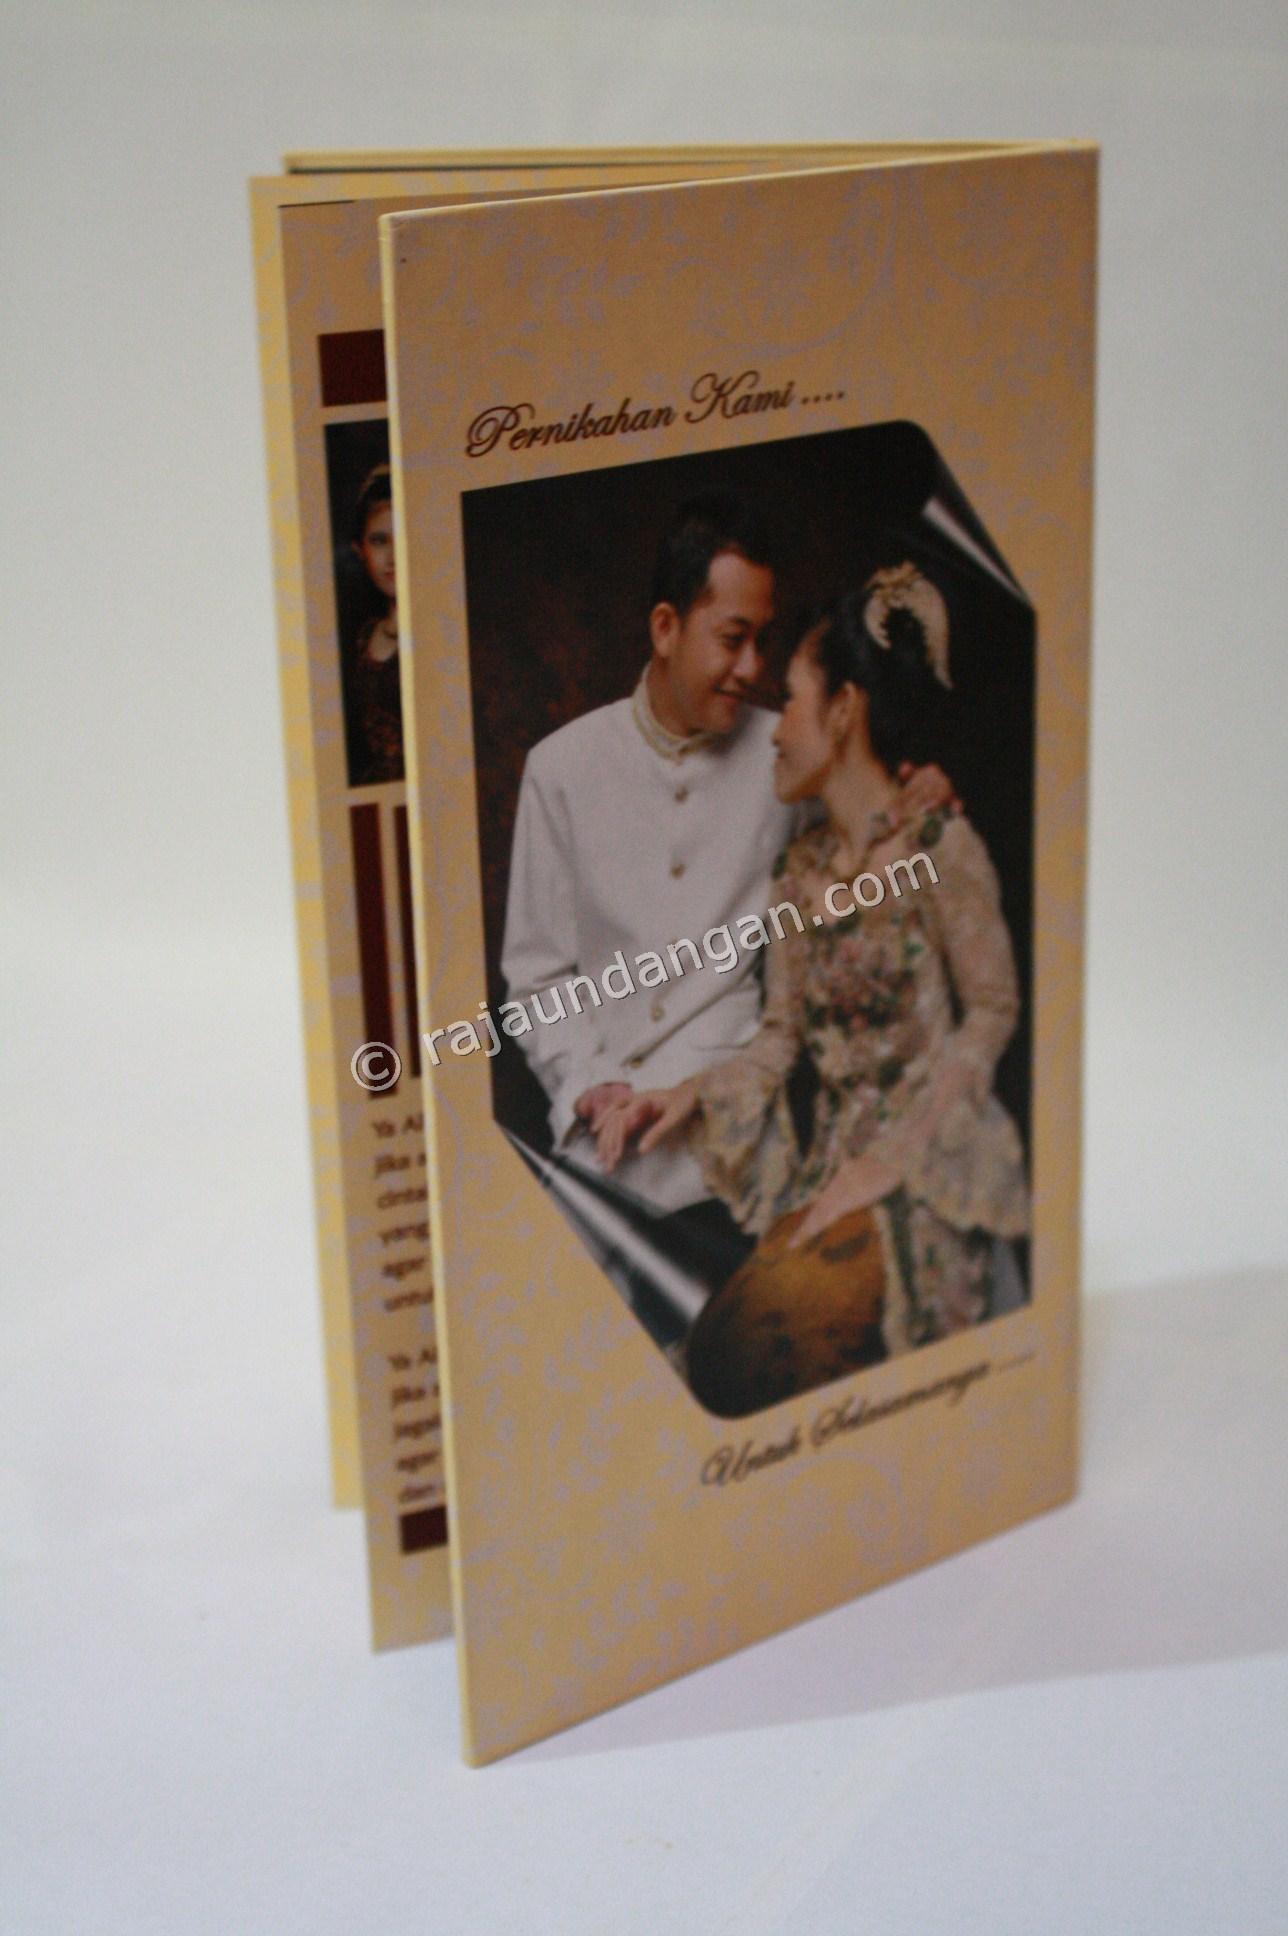 Contoh Kartu Undangan Pernikahan Hardcover Prinsisca dan Agus 7 - Tips Mencetak Wedding Invitations Simple